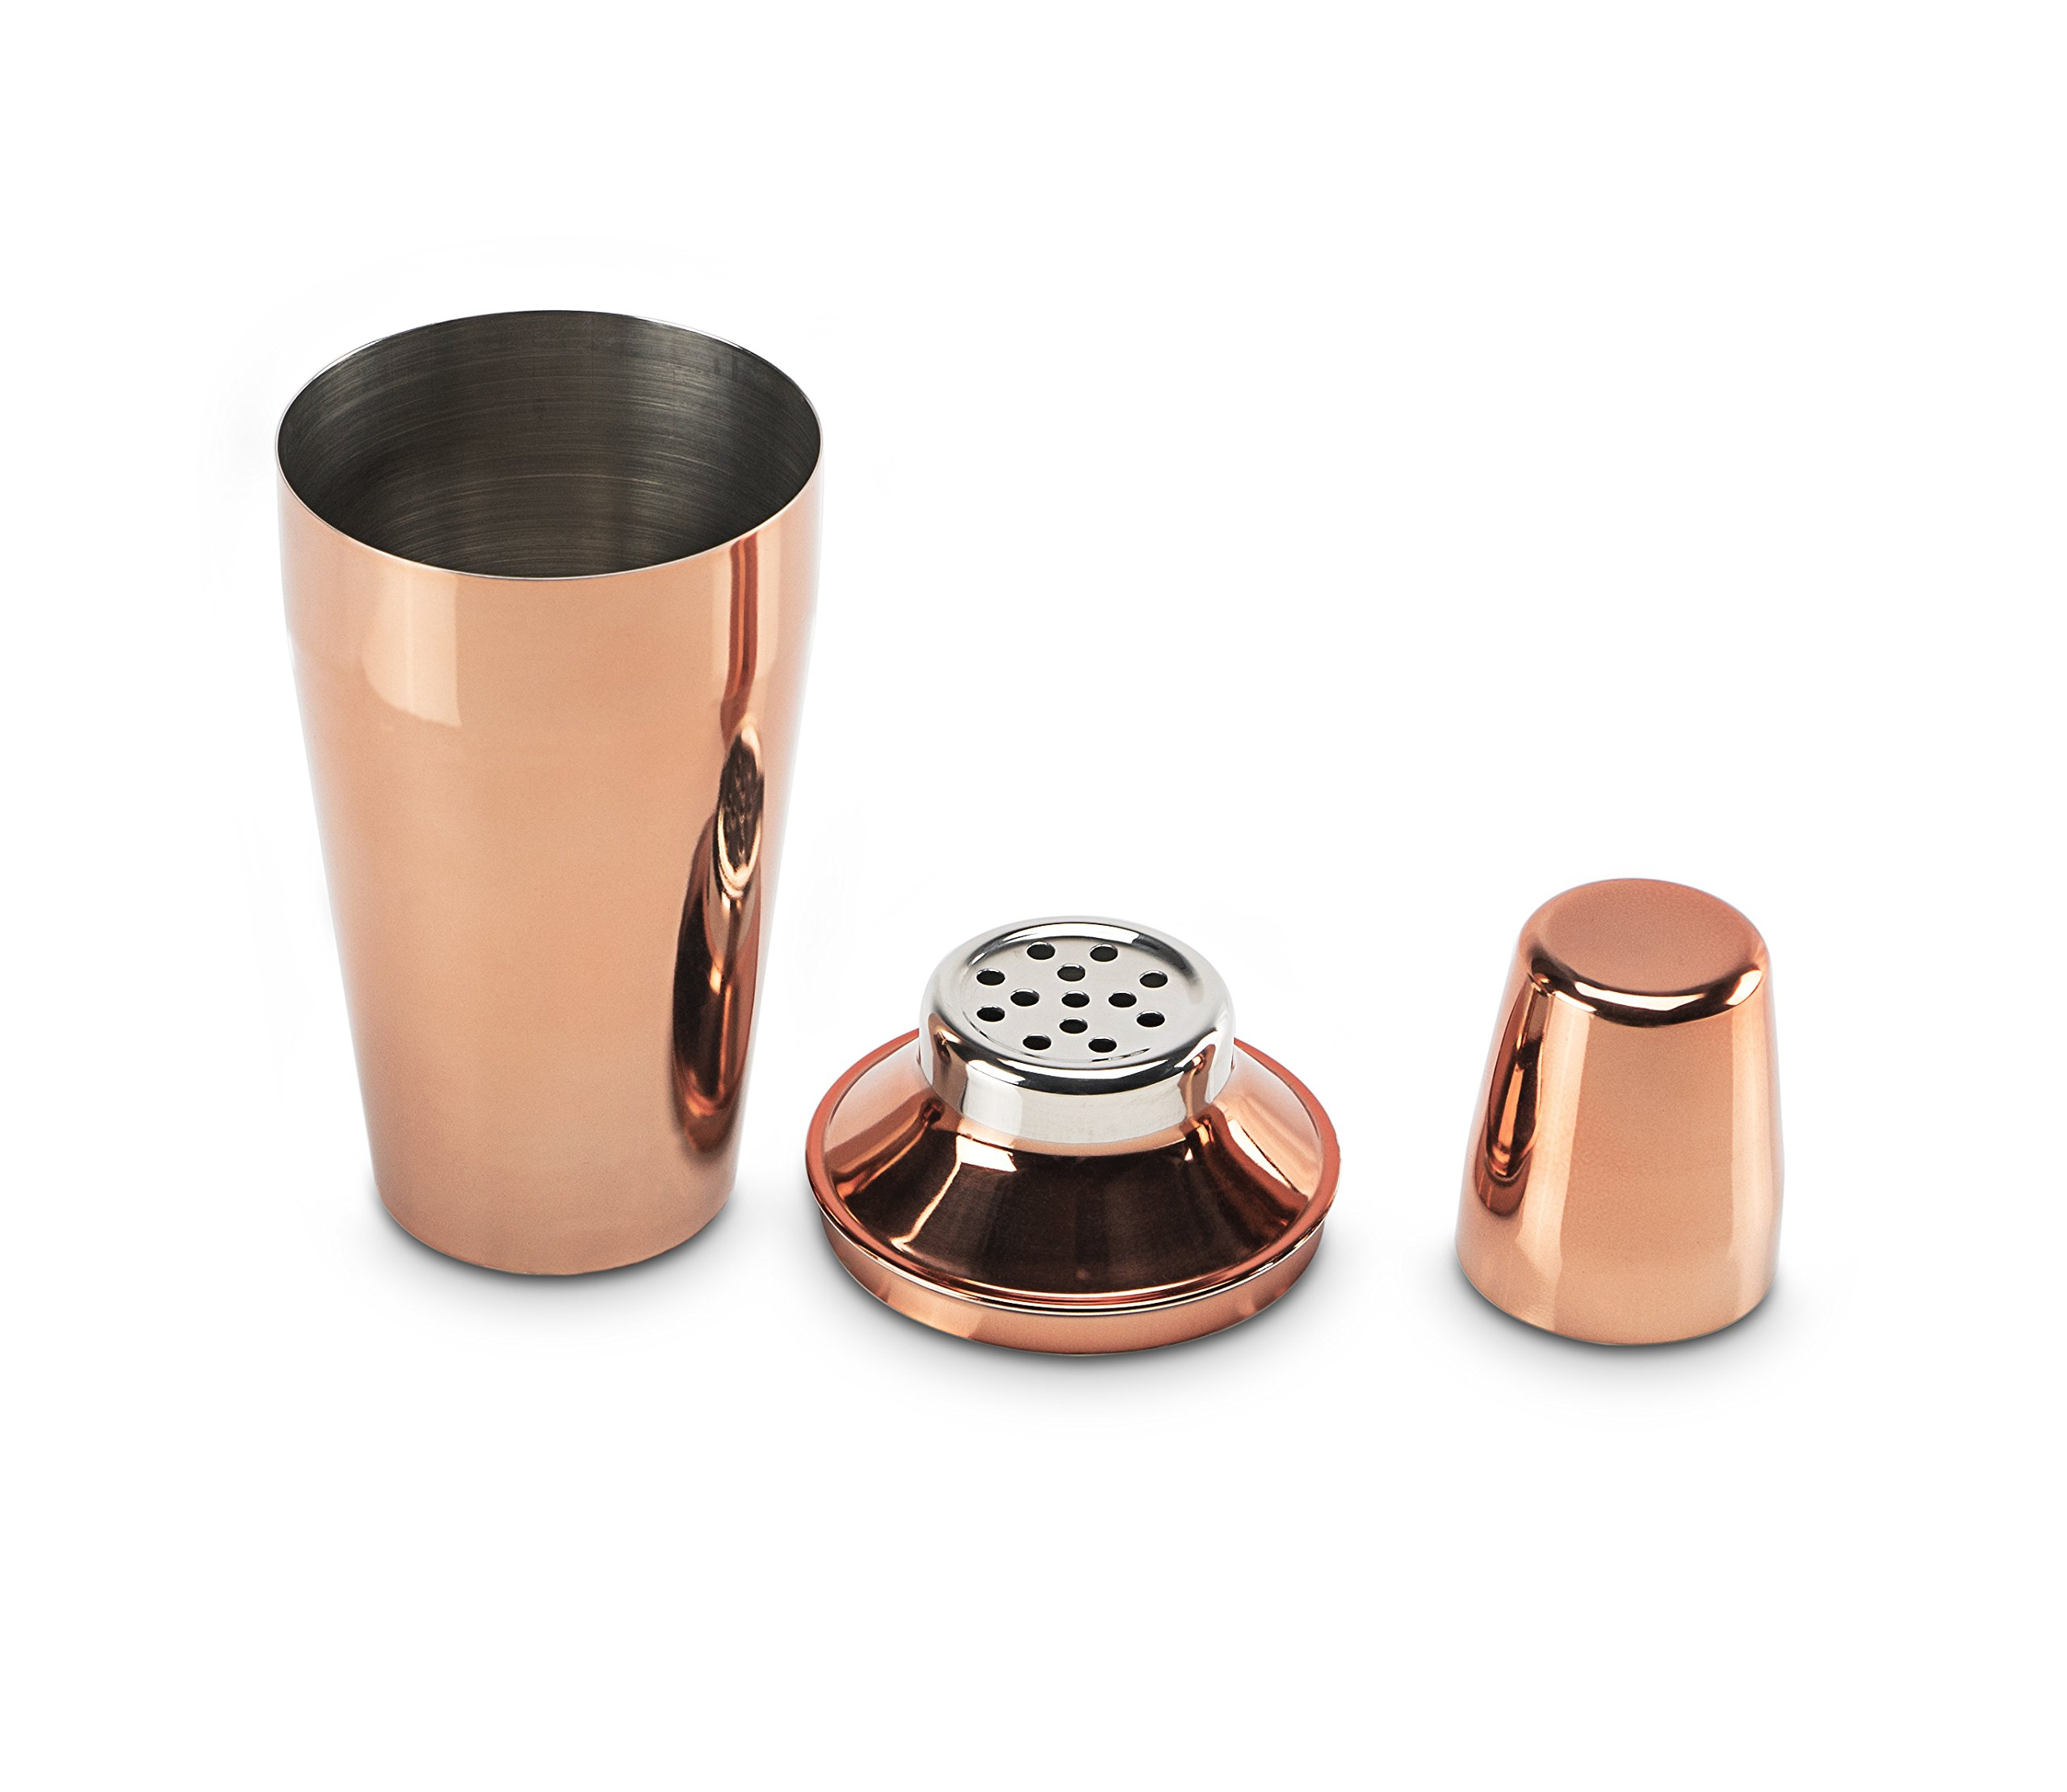 Miko Premium Cocktail Bar Set, High Grade Stainless Steel 6 Piece Set, Made In India (Rose Gold) by Miko (Image #4)